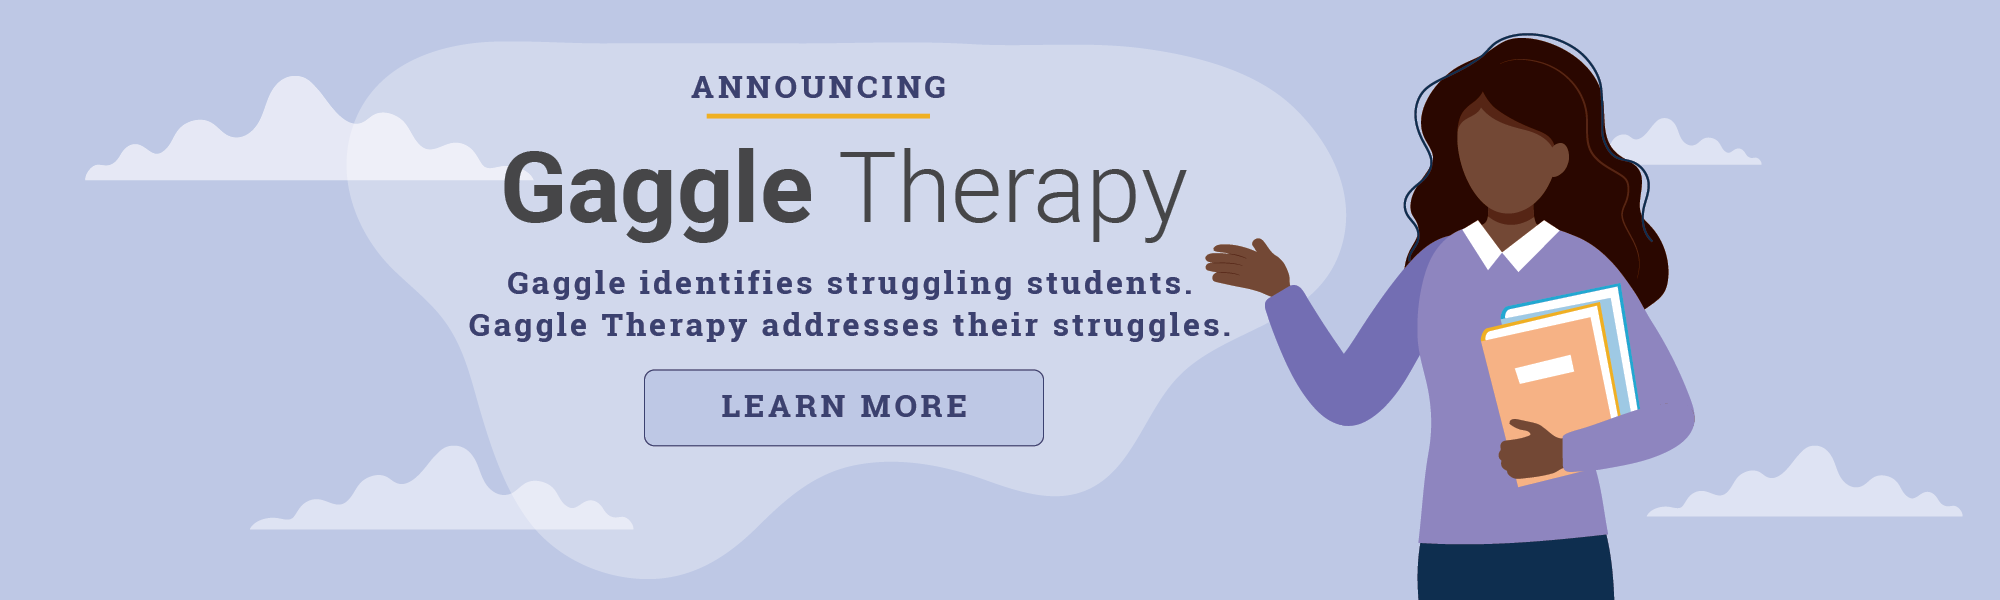 Announcing Gaggle Therapy - Learn More